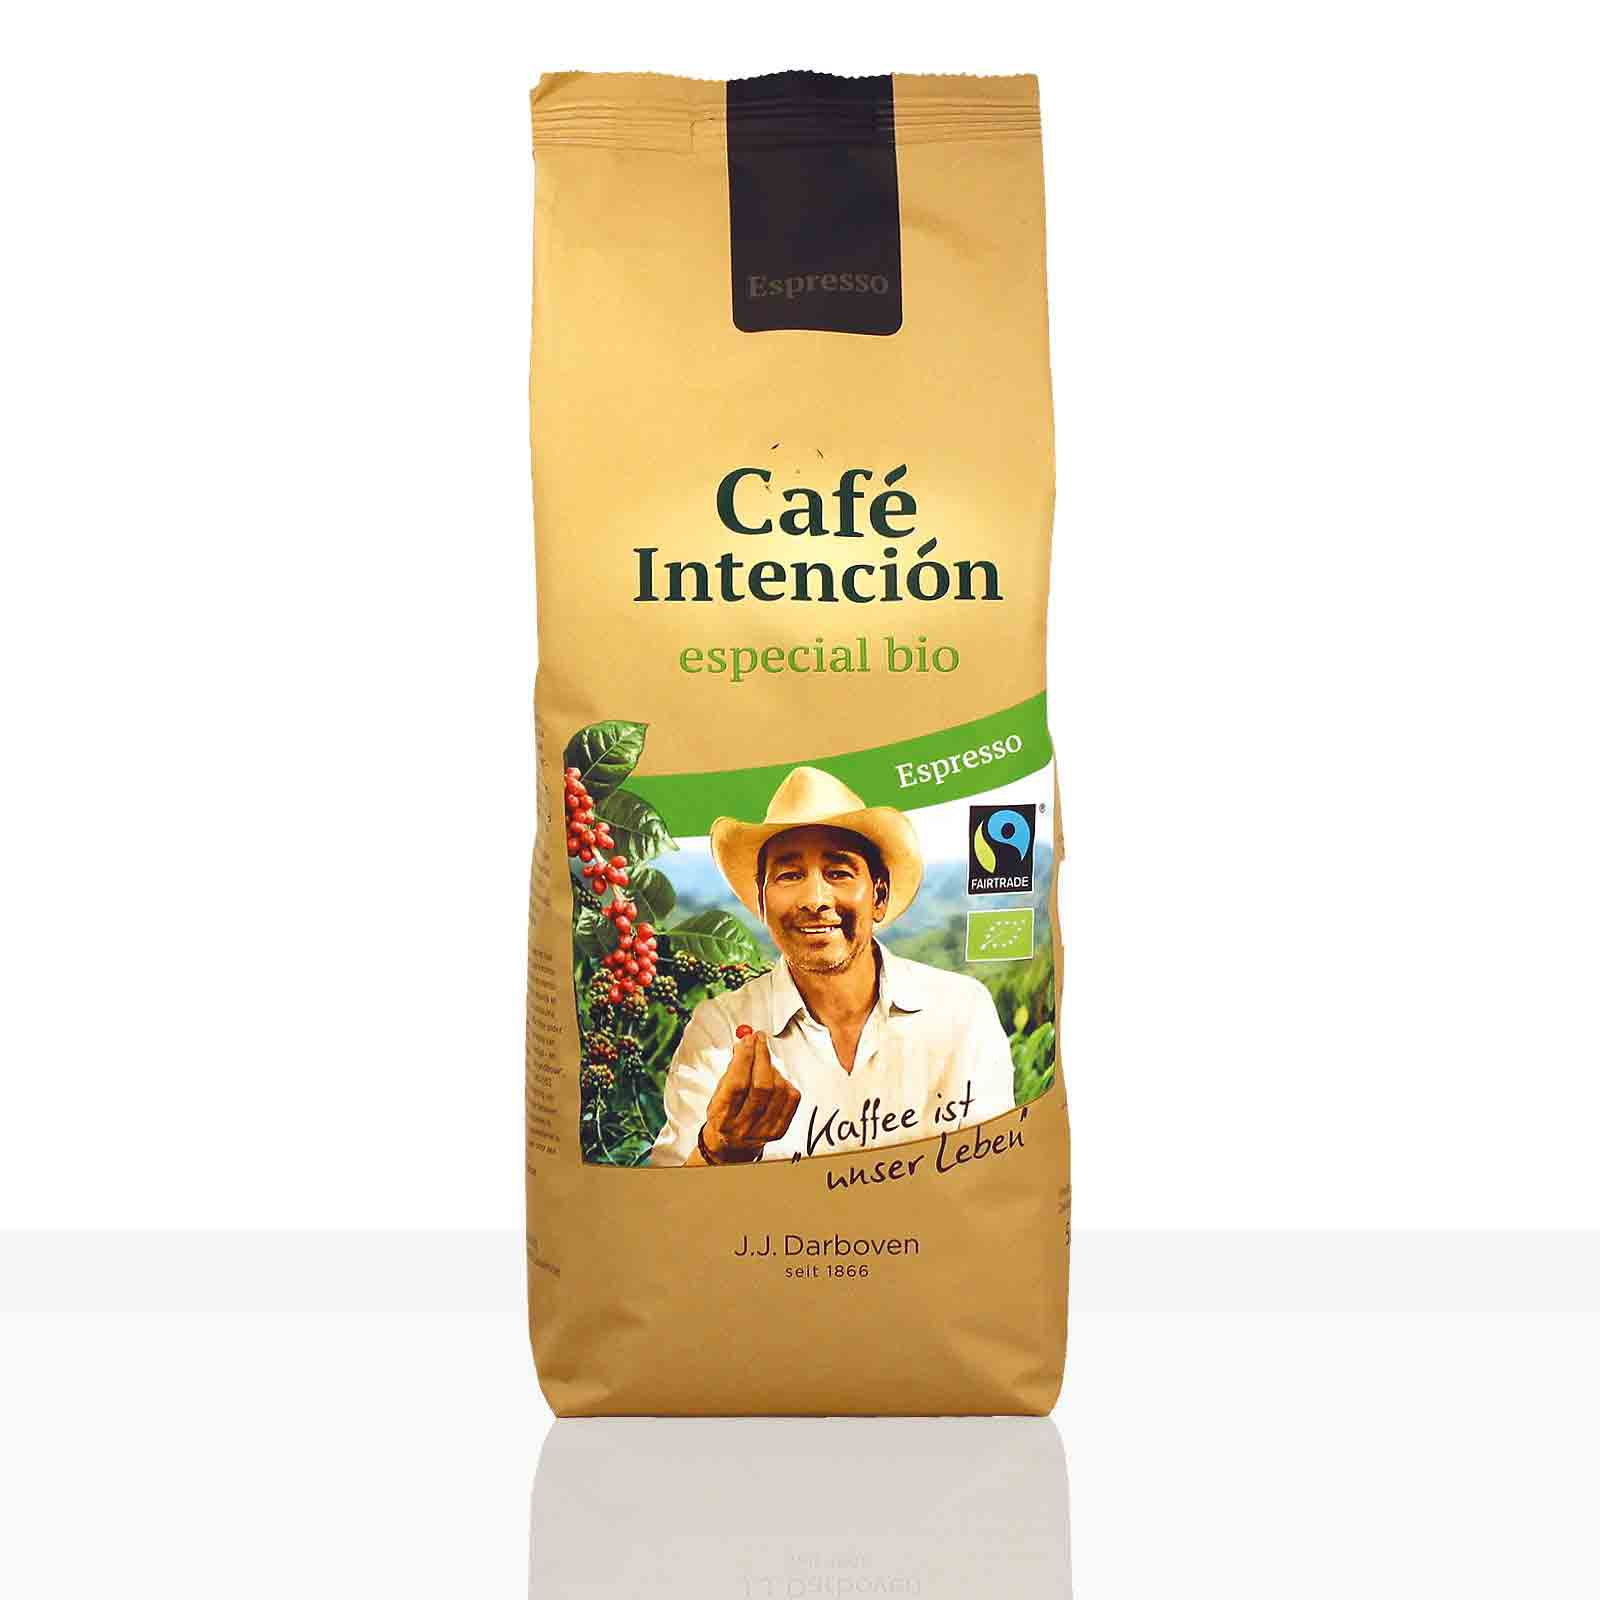 Darboven Espresso Cafe Intencion especial Fairtrade - 500g ganze Kaffee-Bohne